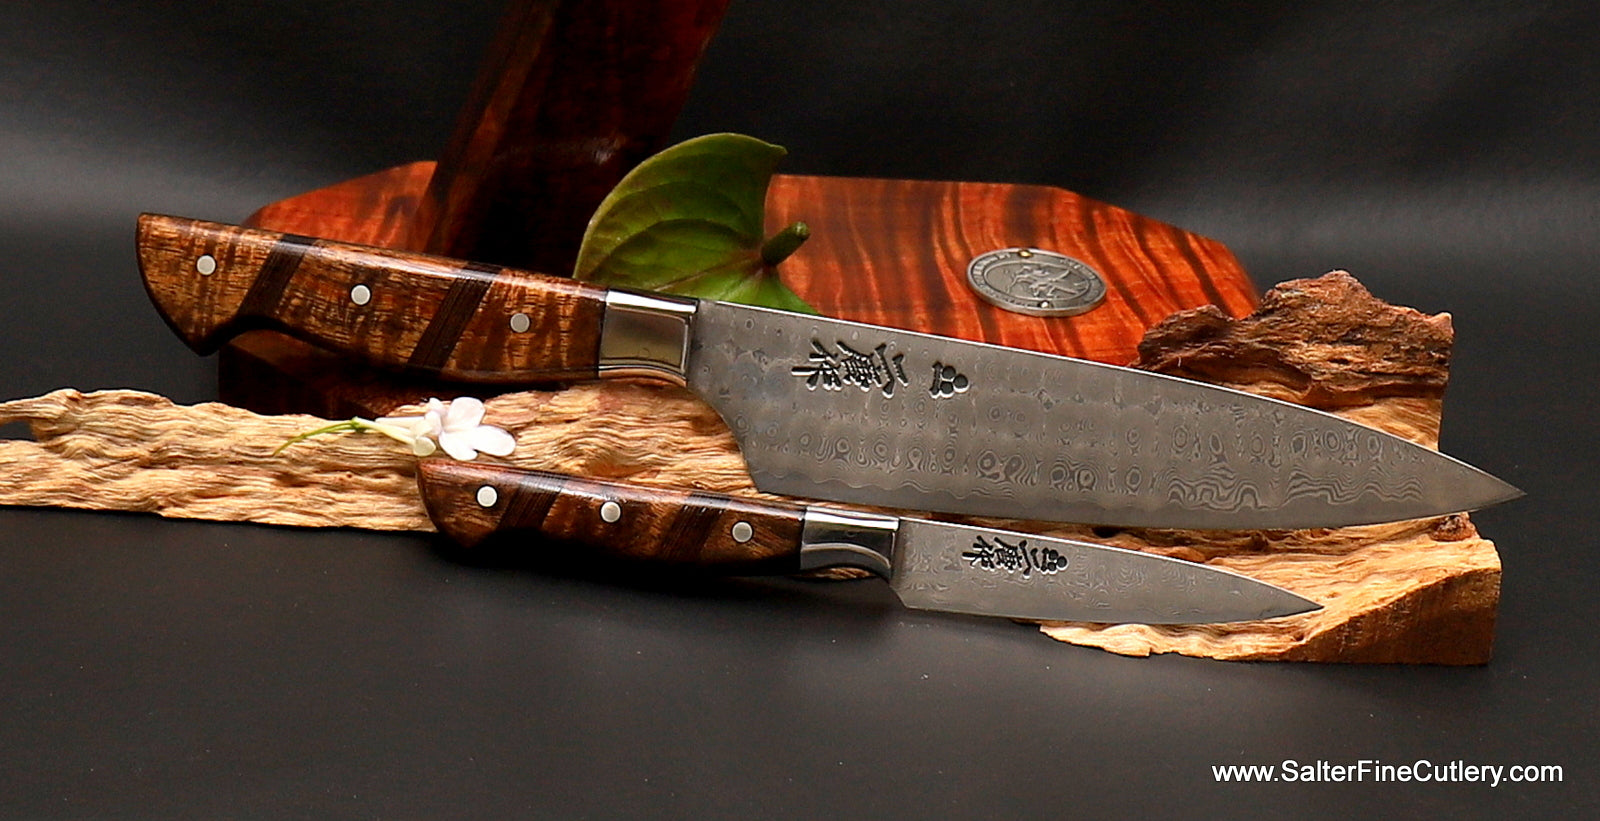 Custom order chef knives with top-of-the-line whirlpool damascus pattern and exotic koa wood handles by Salter Fine Cutlery